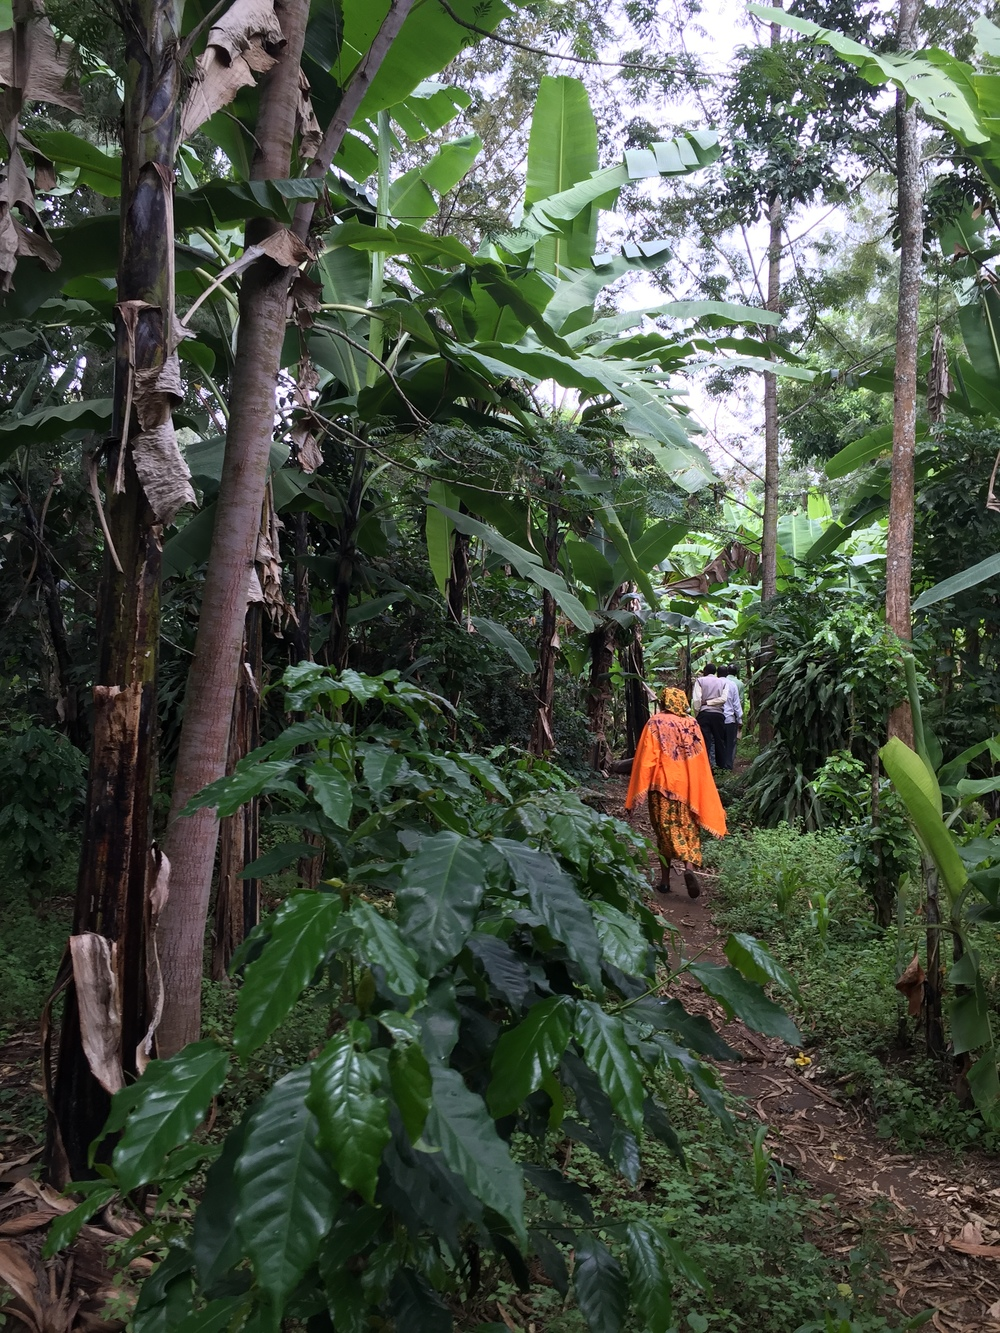 Walking through the thick banana plantations. Most farmers have some designated land for bananas where the odd coffee tree is grown as well.